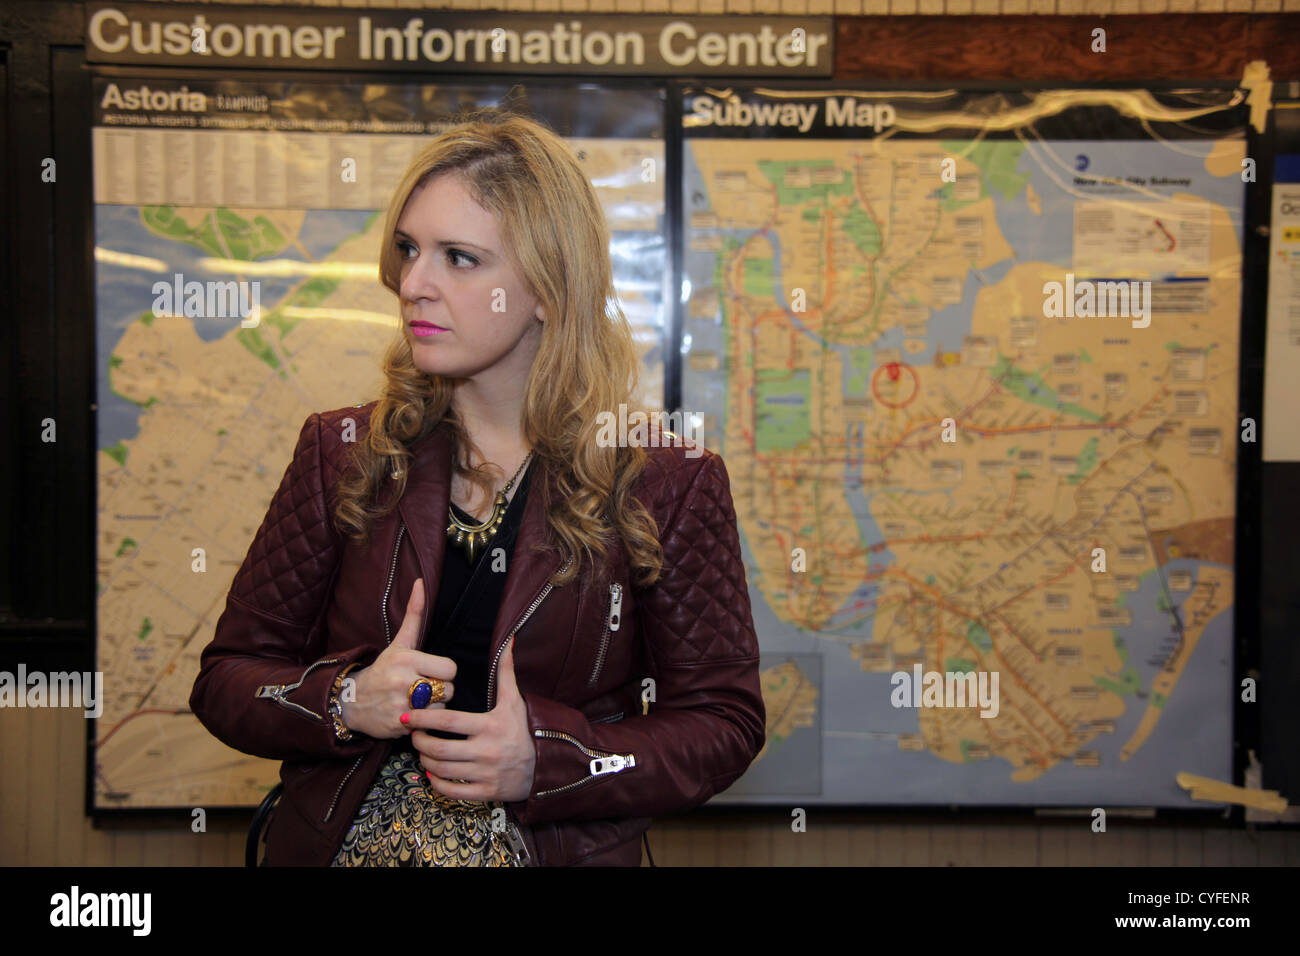 Astoria Subway Map.Woman Standing In Front Of Subway Map At Station In Astoria Queens